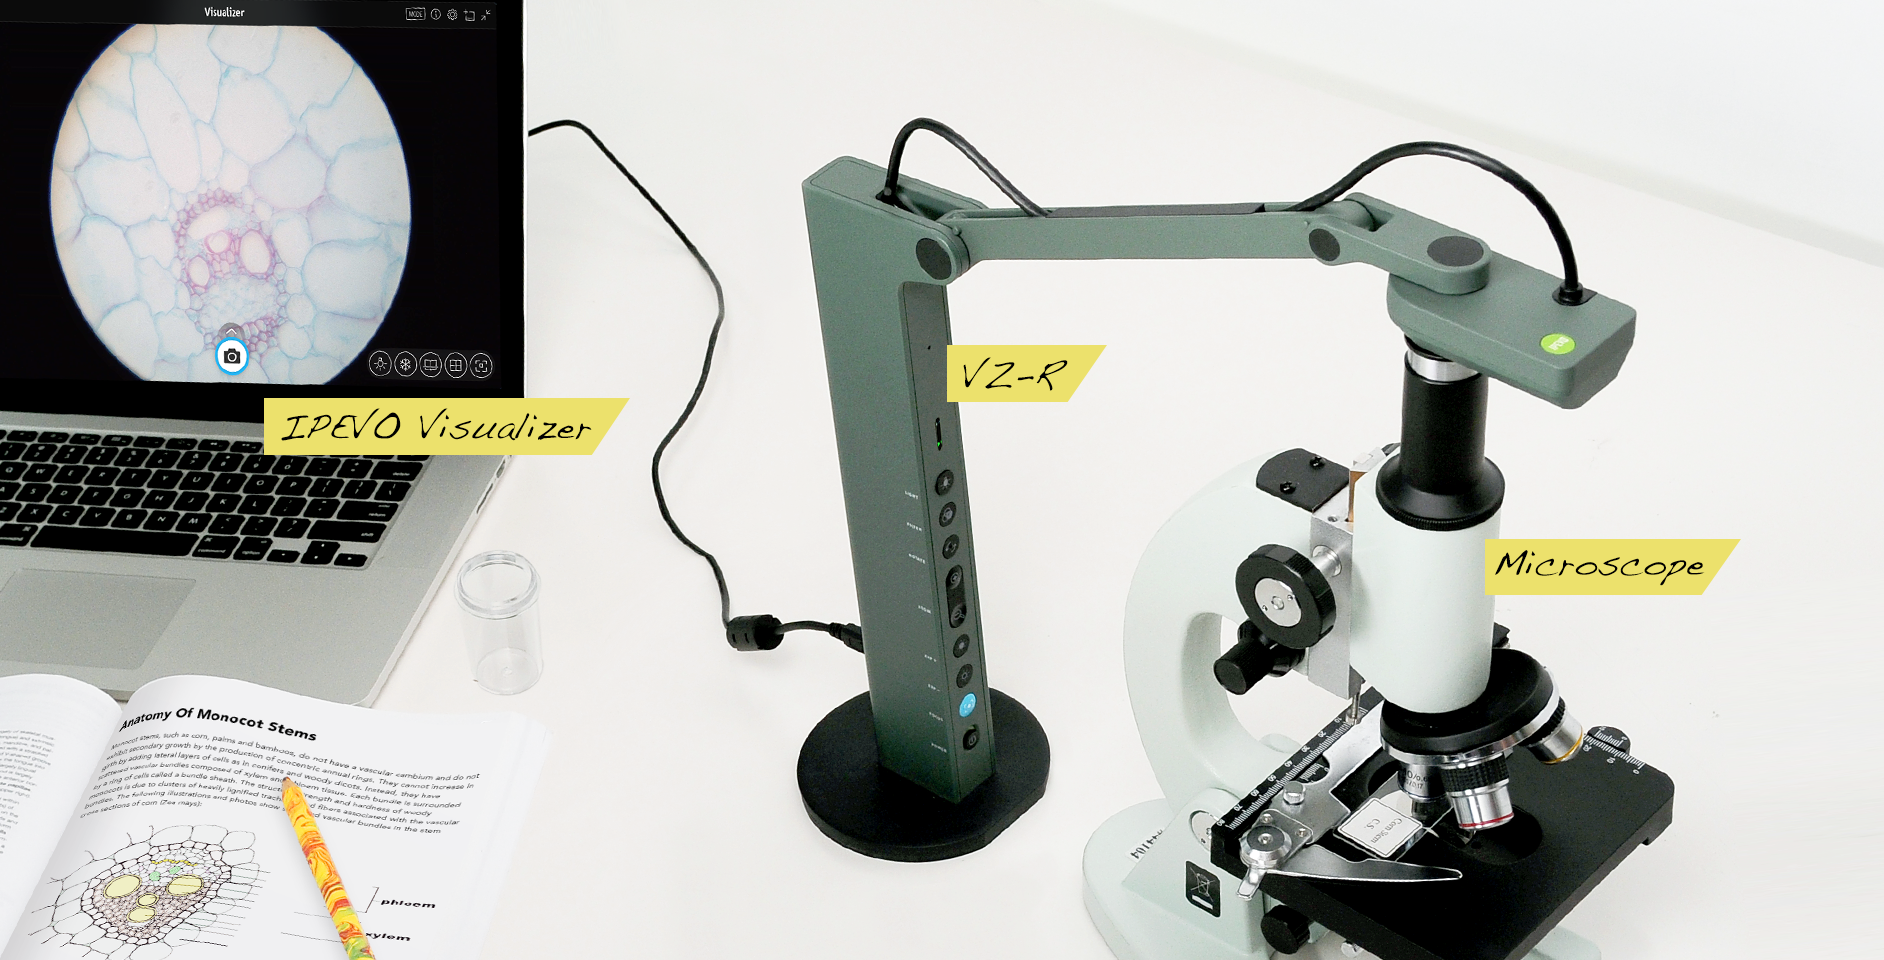 Get a closer look by using IPEVO's document cameras with a microscope